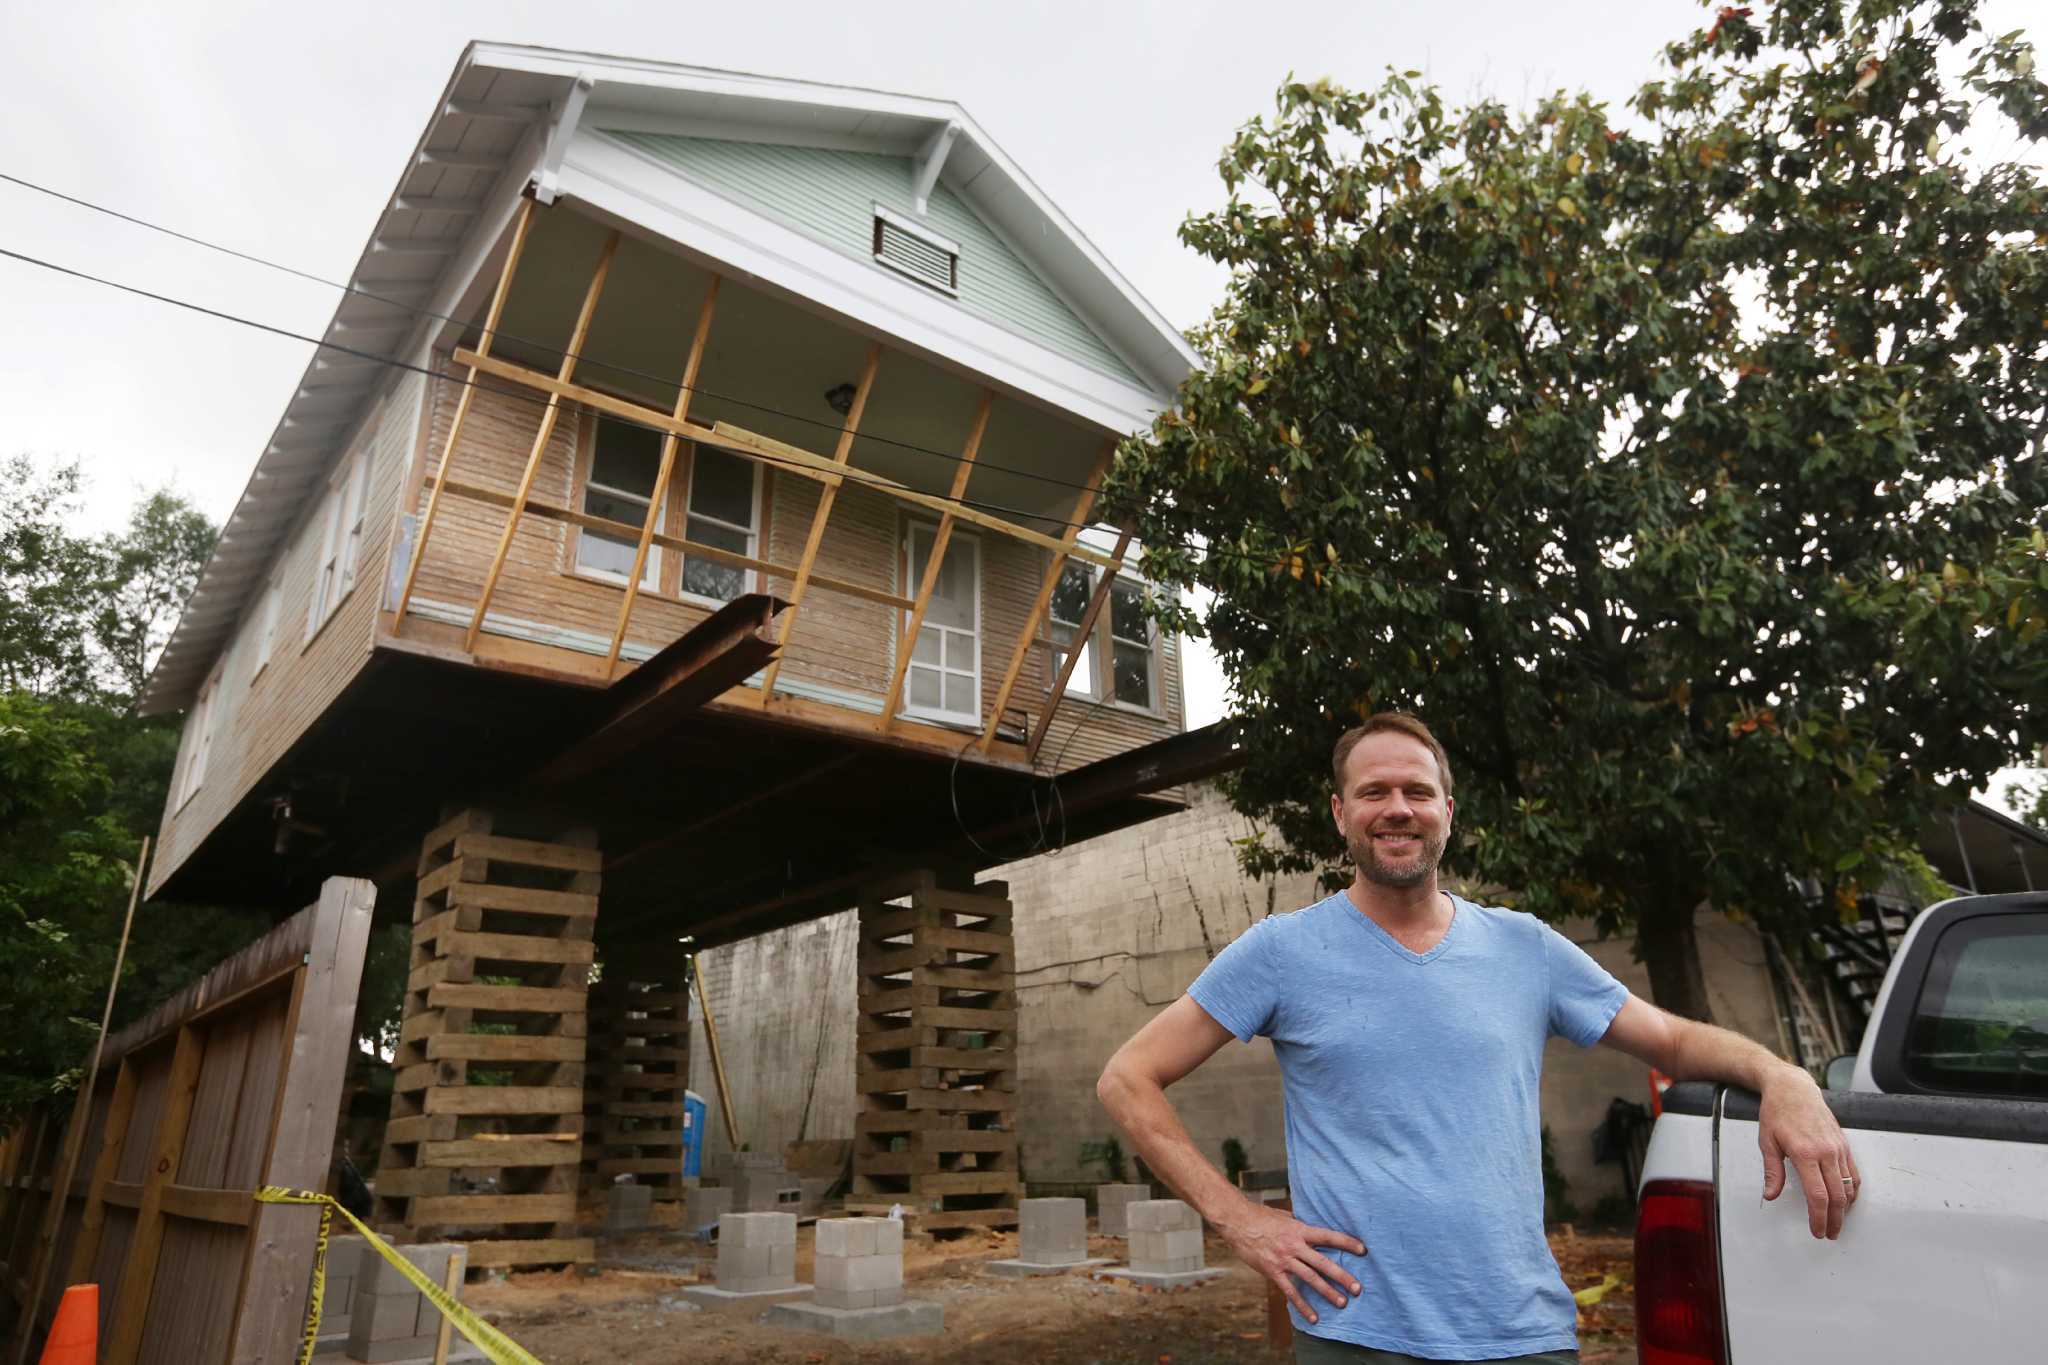 Heights Remodeler Jacks Up House To Add On Below